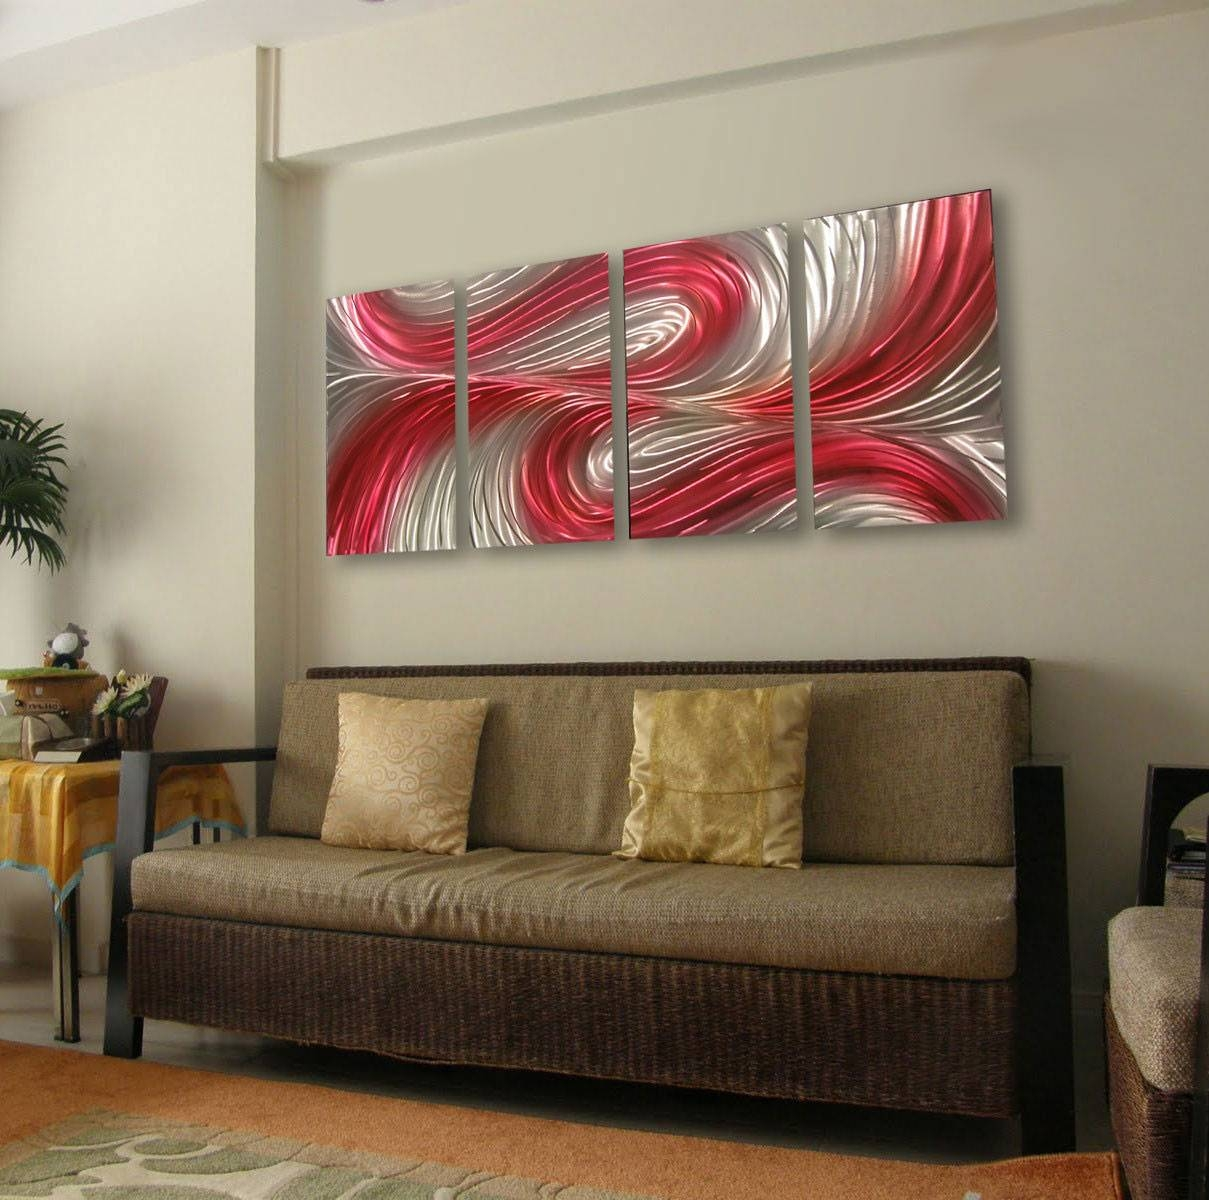 Classy Wall Art For Living Room Painting On Decorating Home Ideas Regarding Most Recently Released Classy Wall Art (View 7 of 15)